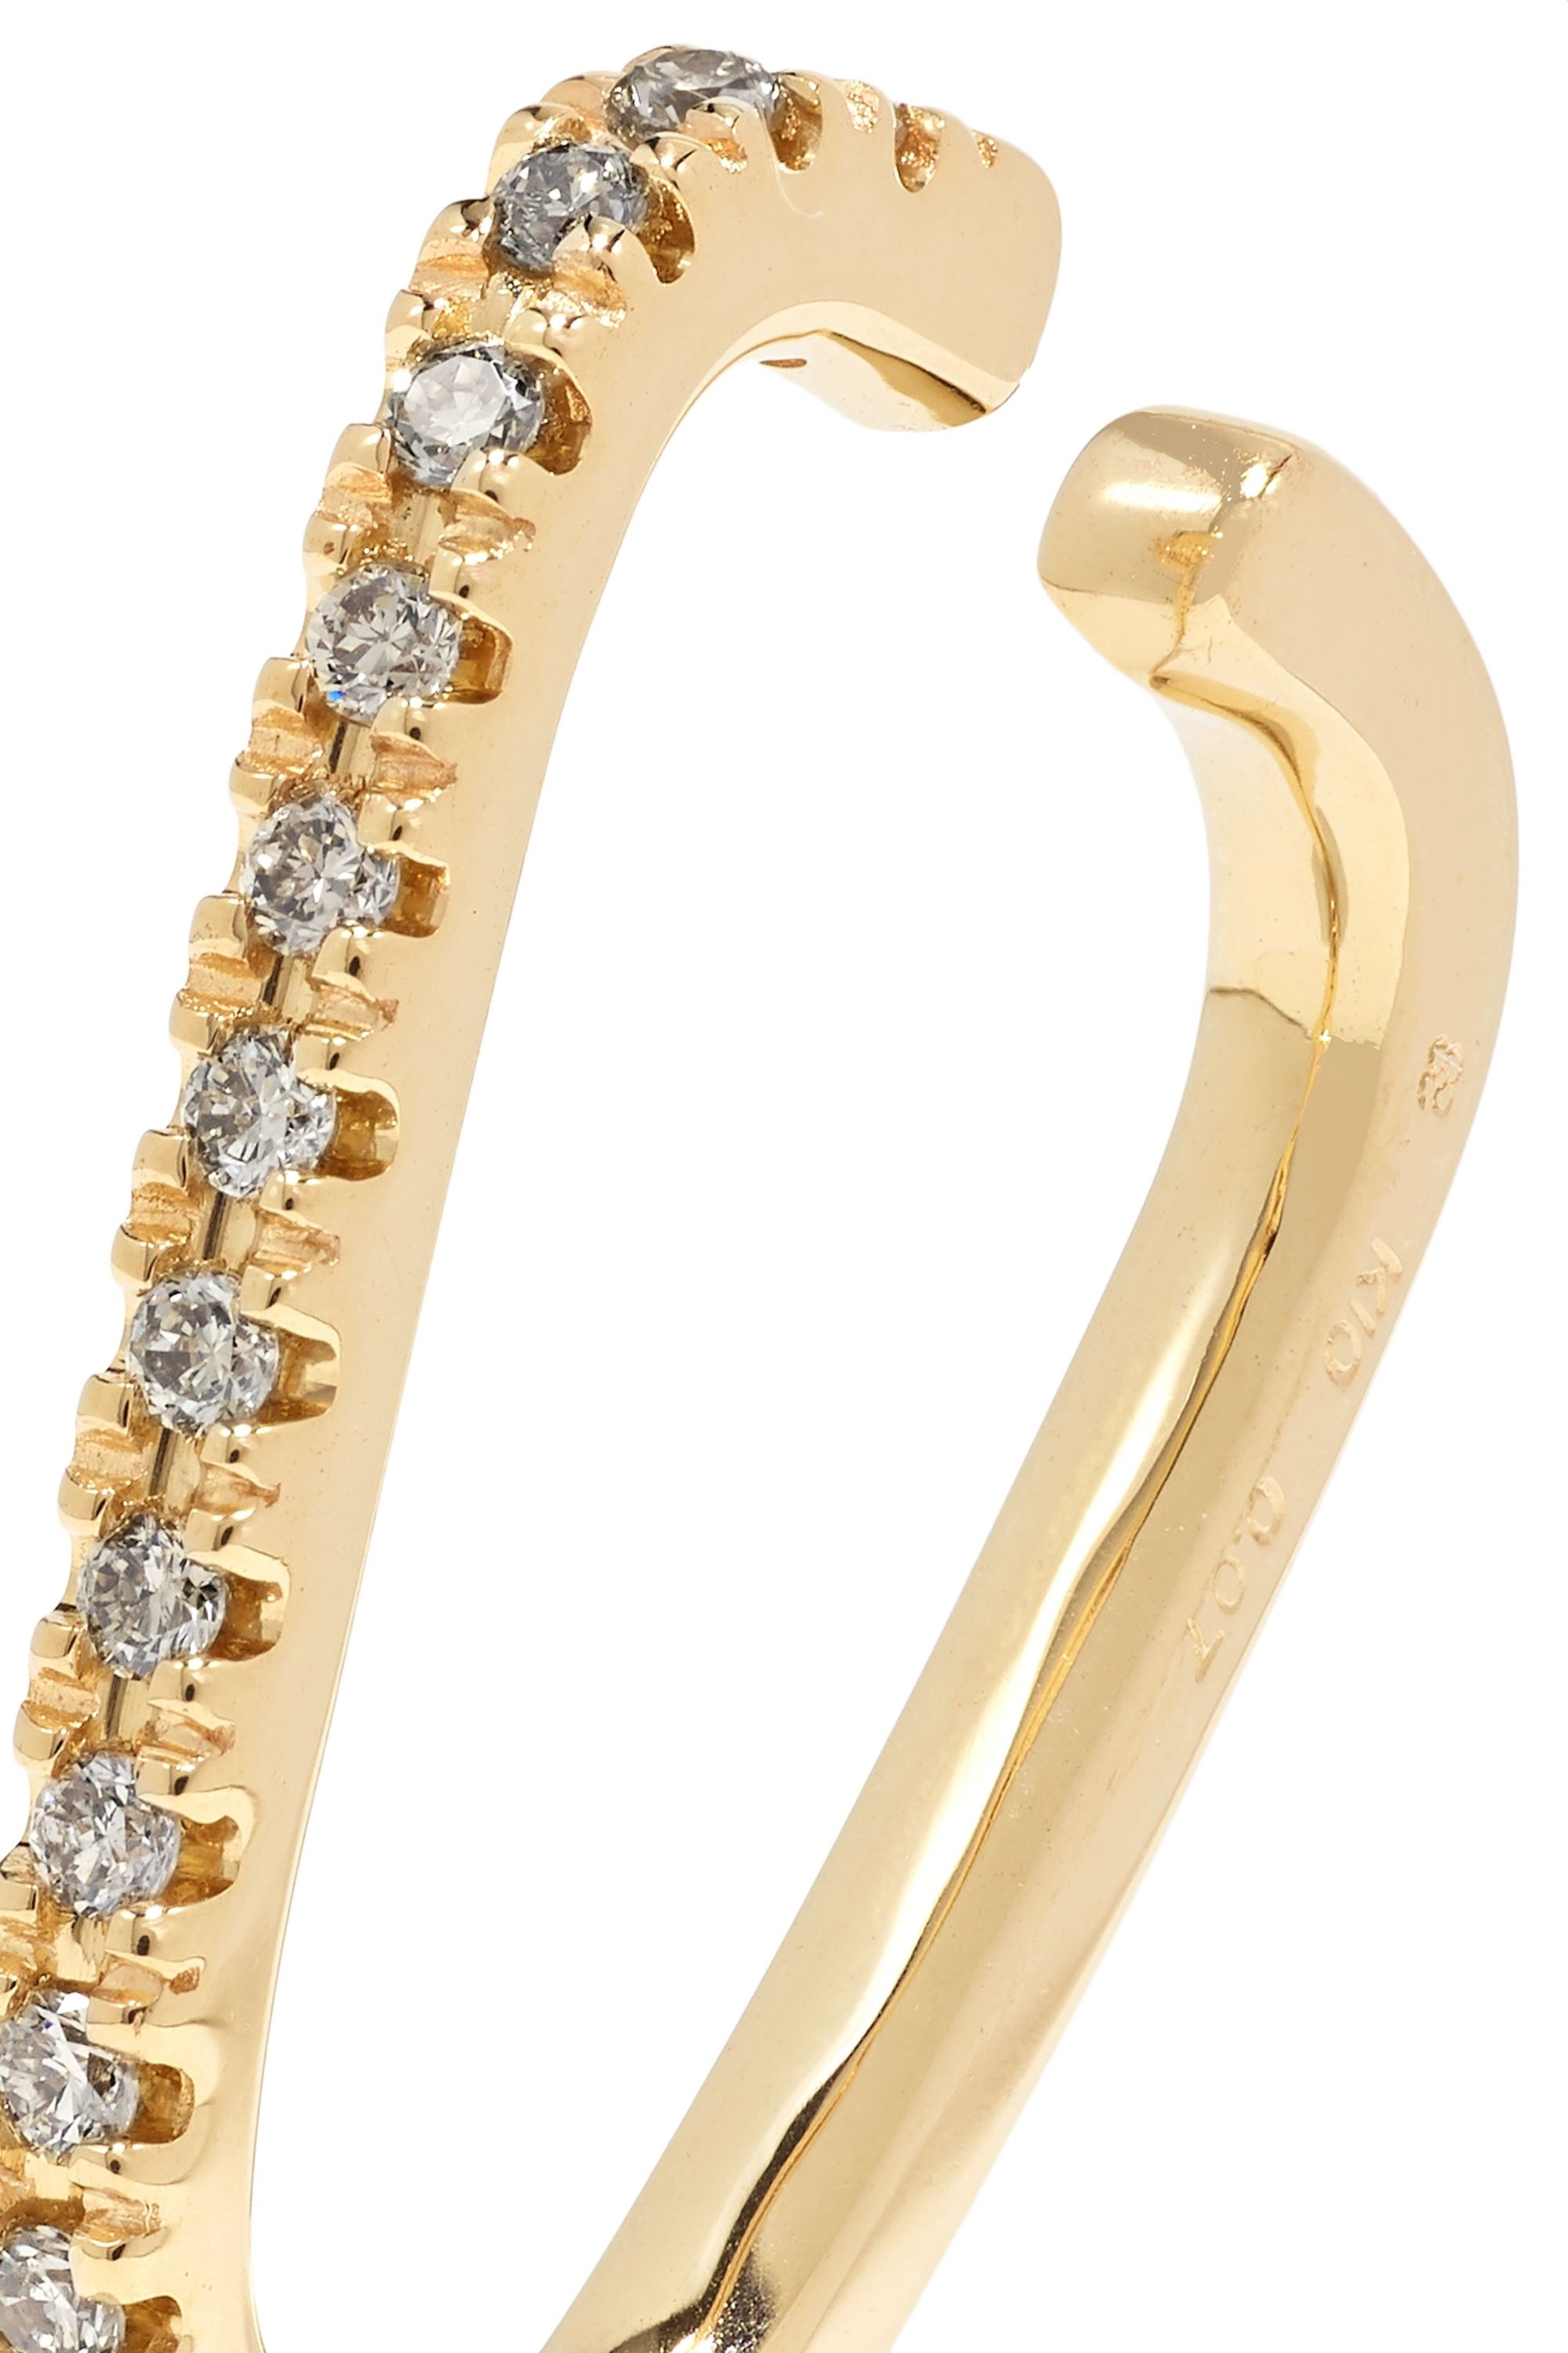 Hirotaka Gossamer 10-karat gold diamond ear cuff